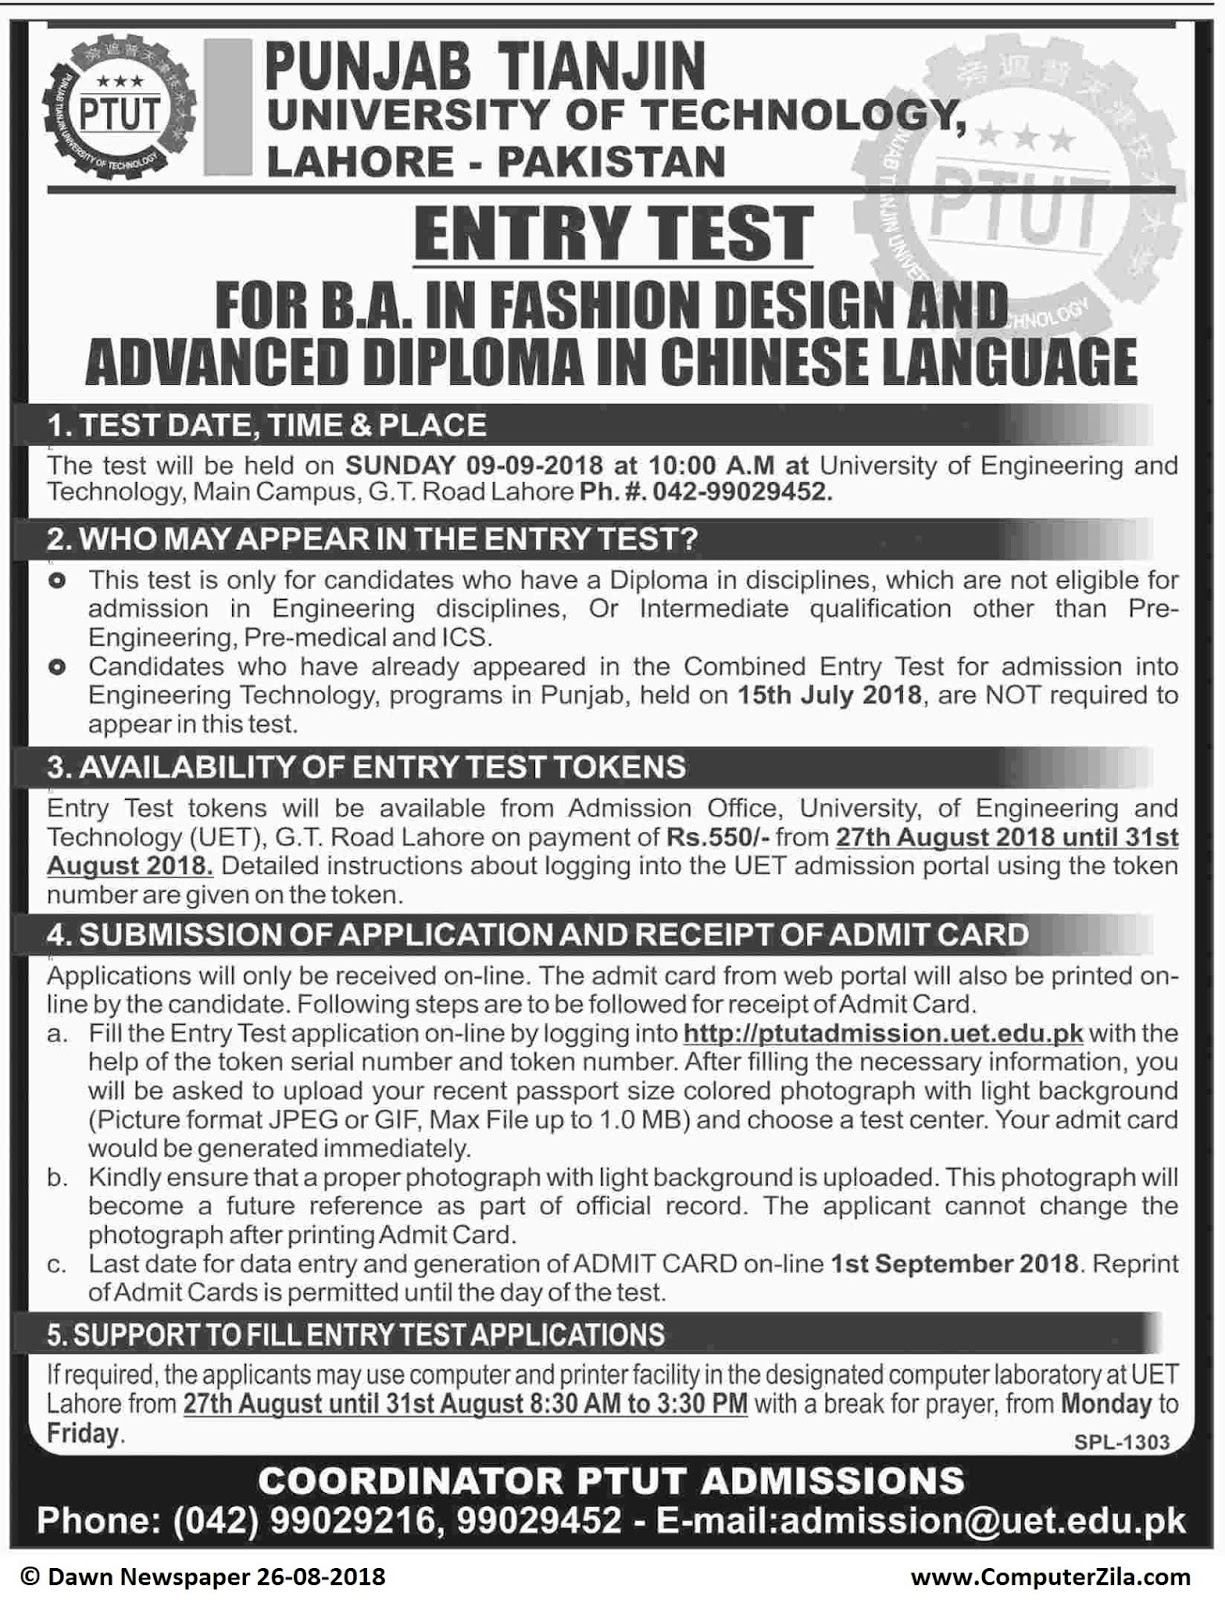 Admissions Open For Fall 2018 At PTUT Lahore Campus